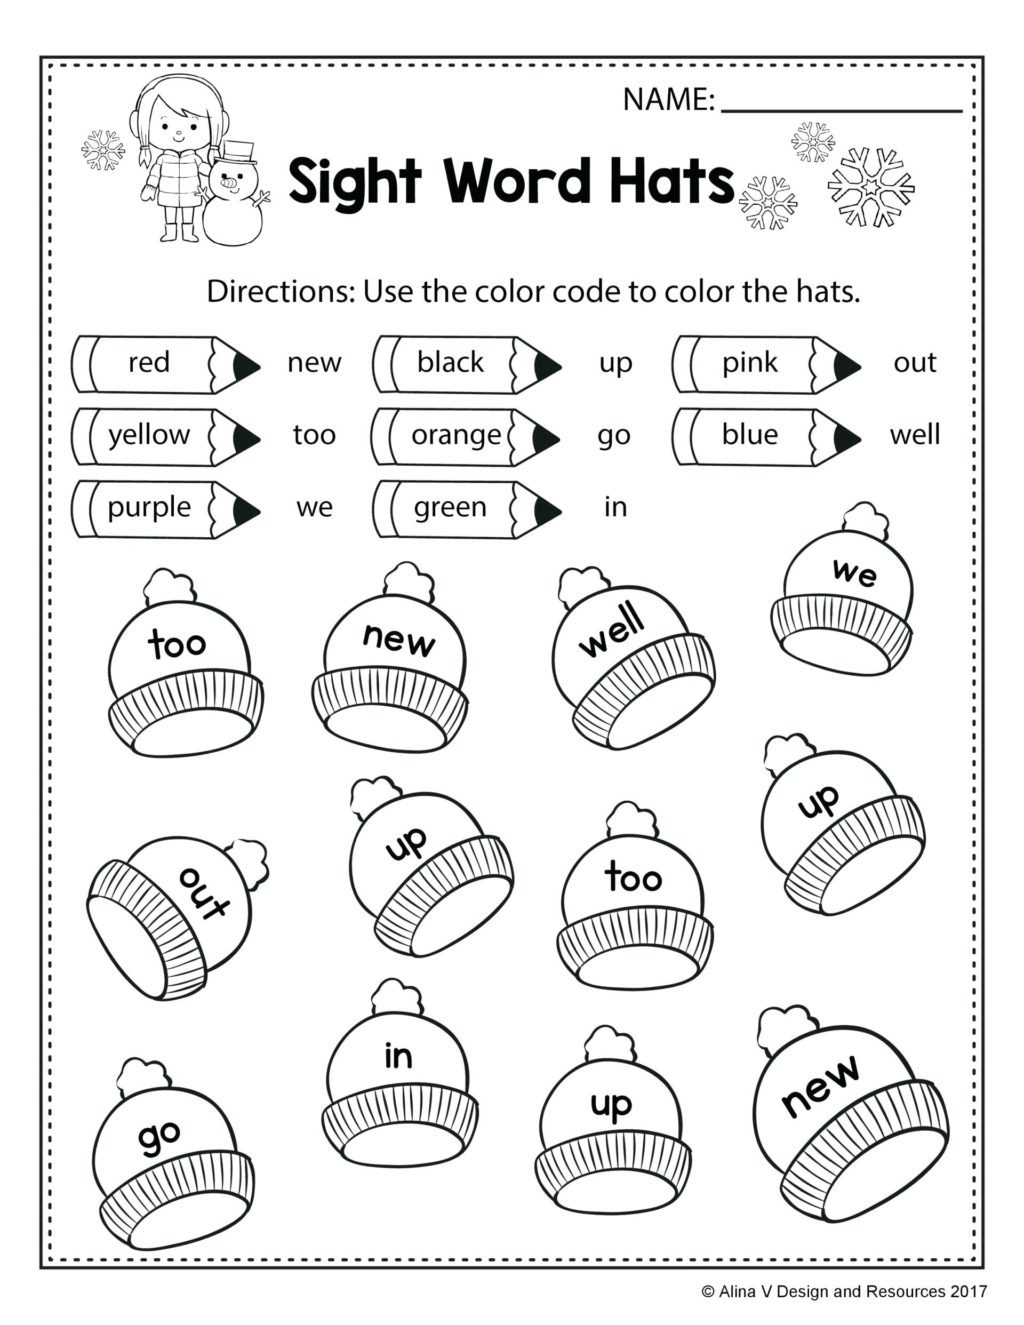 Free Printable Sentence Structure Worksheets Worksheet Collecting Like Terms Worksheet Ks3 Funddition